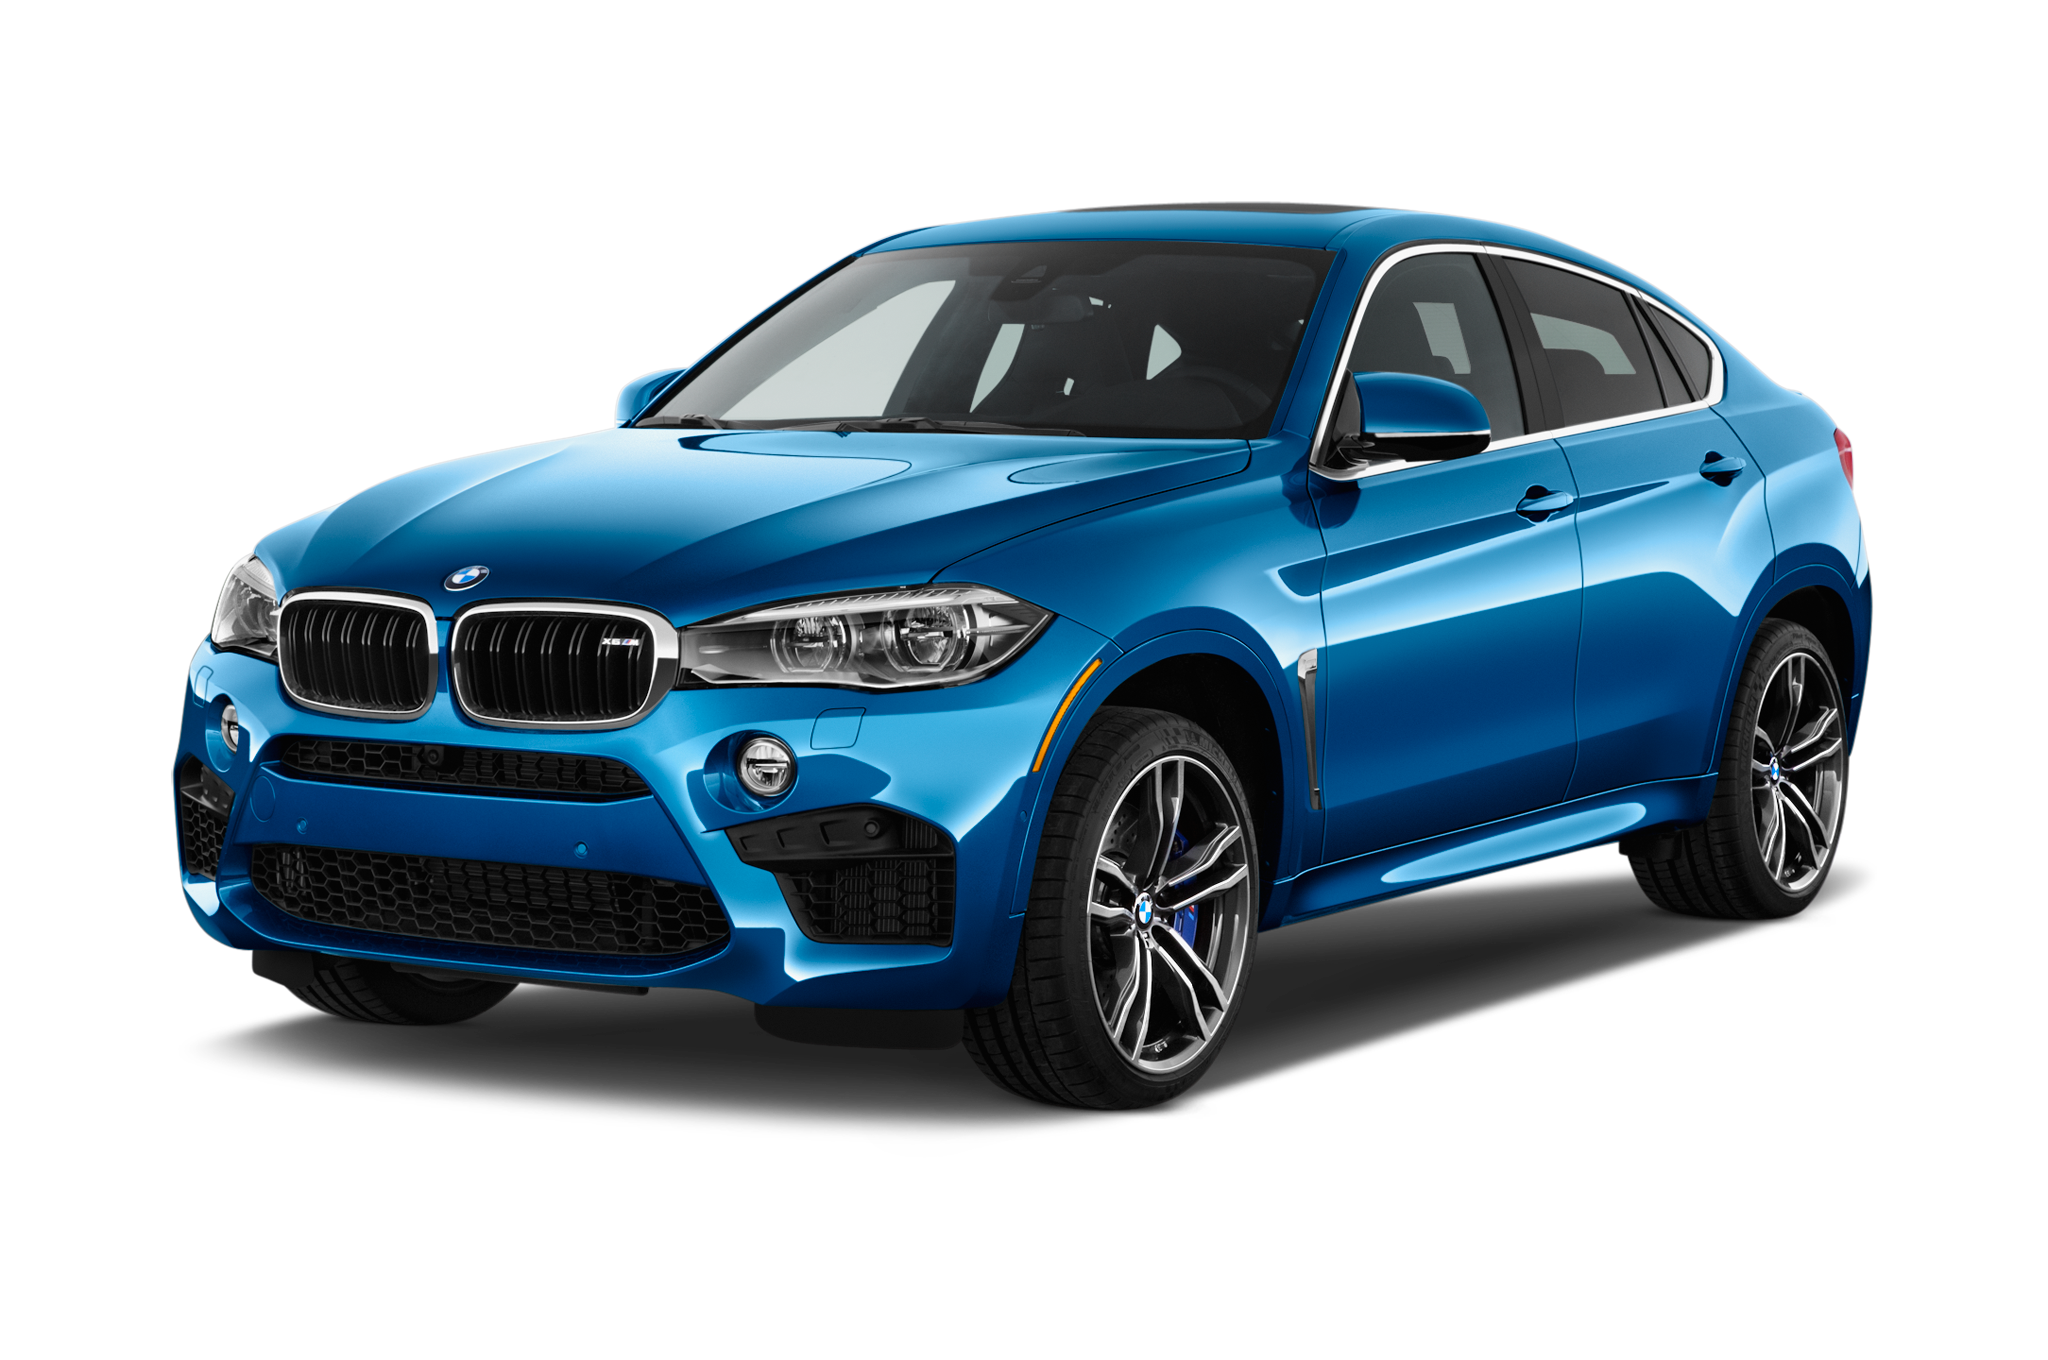 2015 BMW X6 M Overview